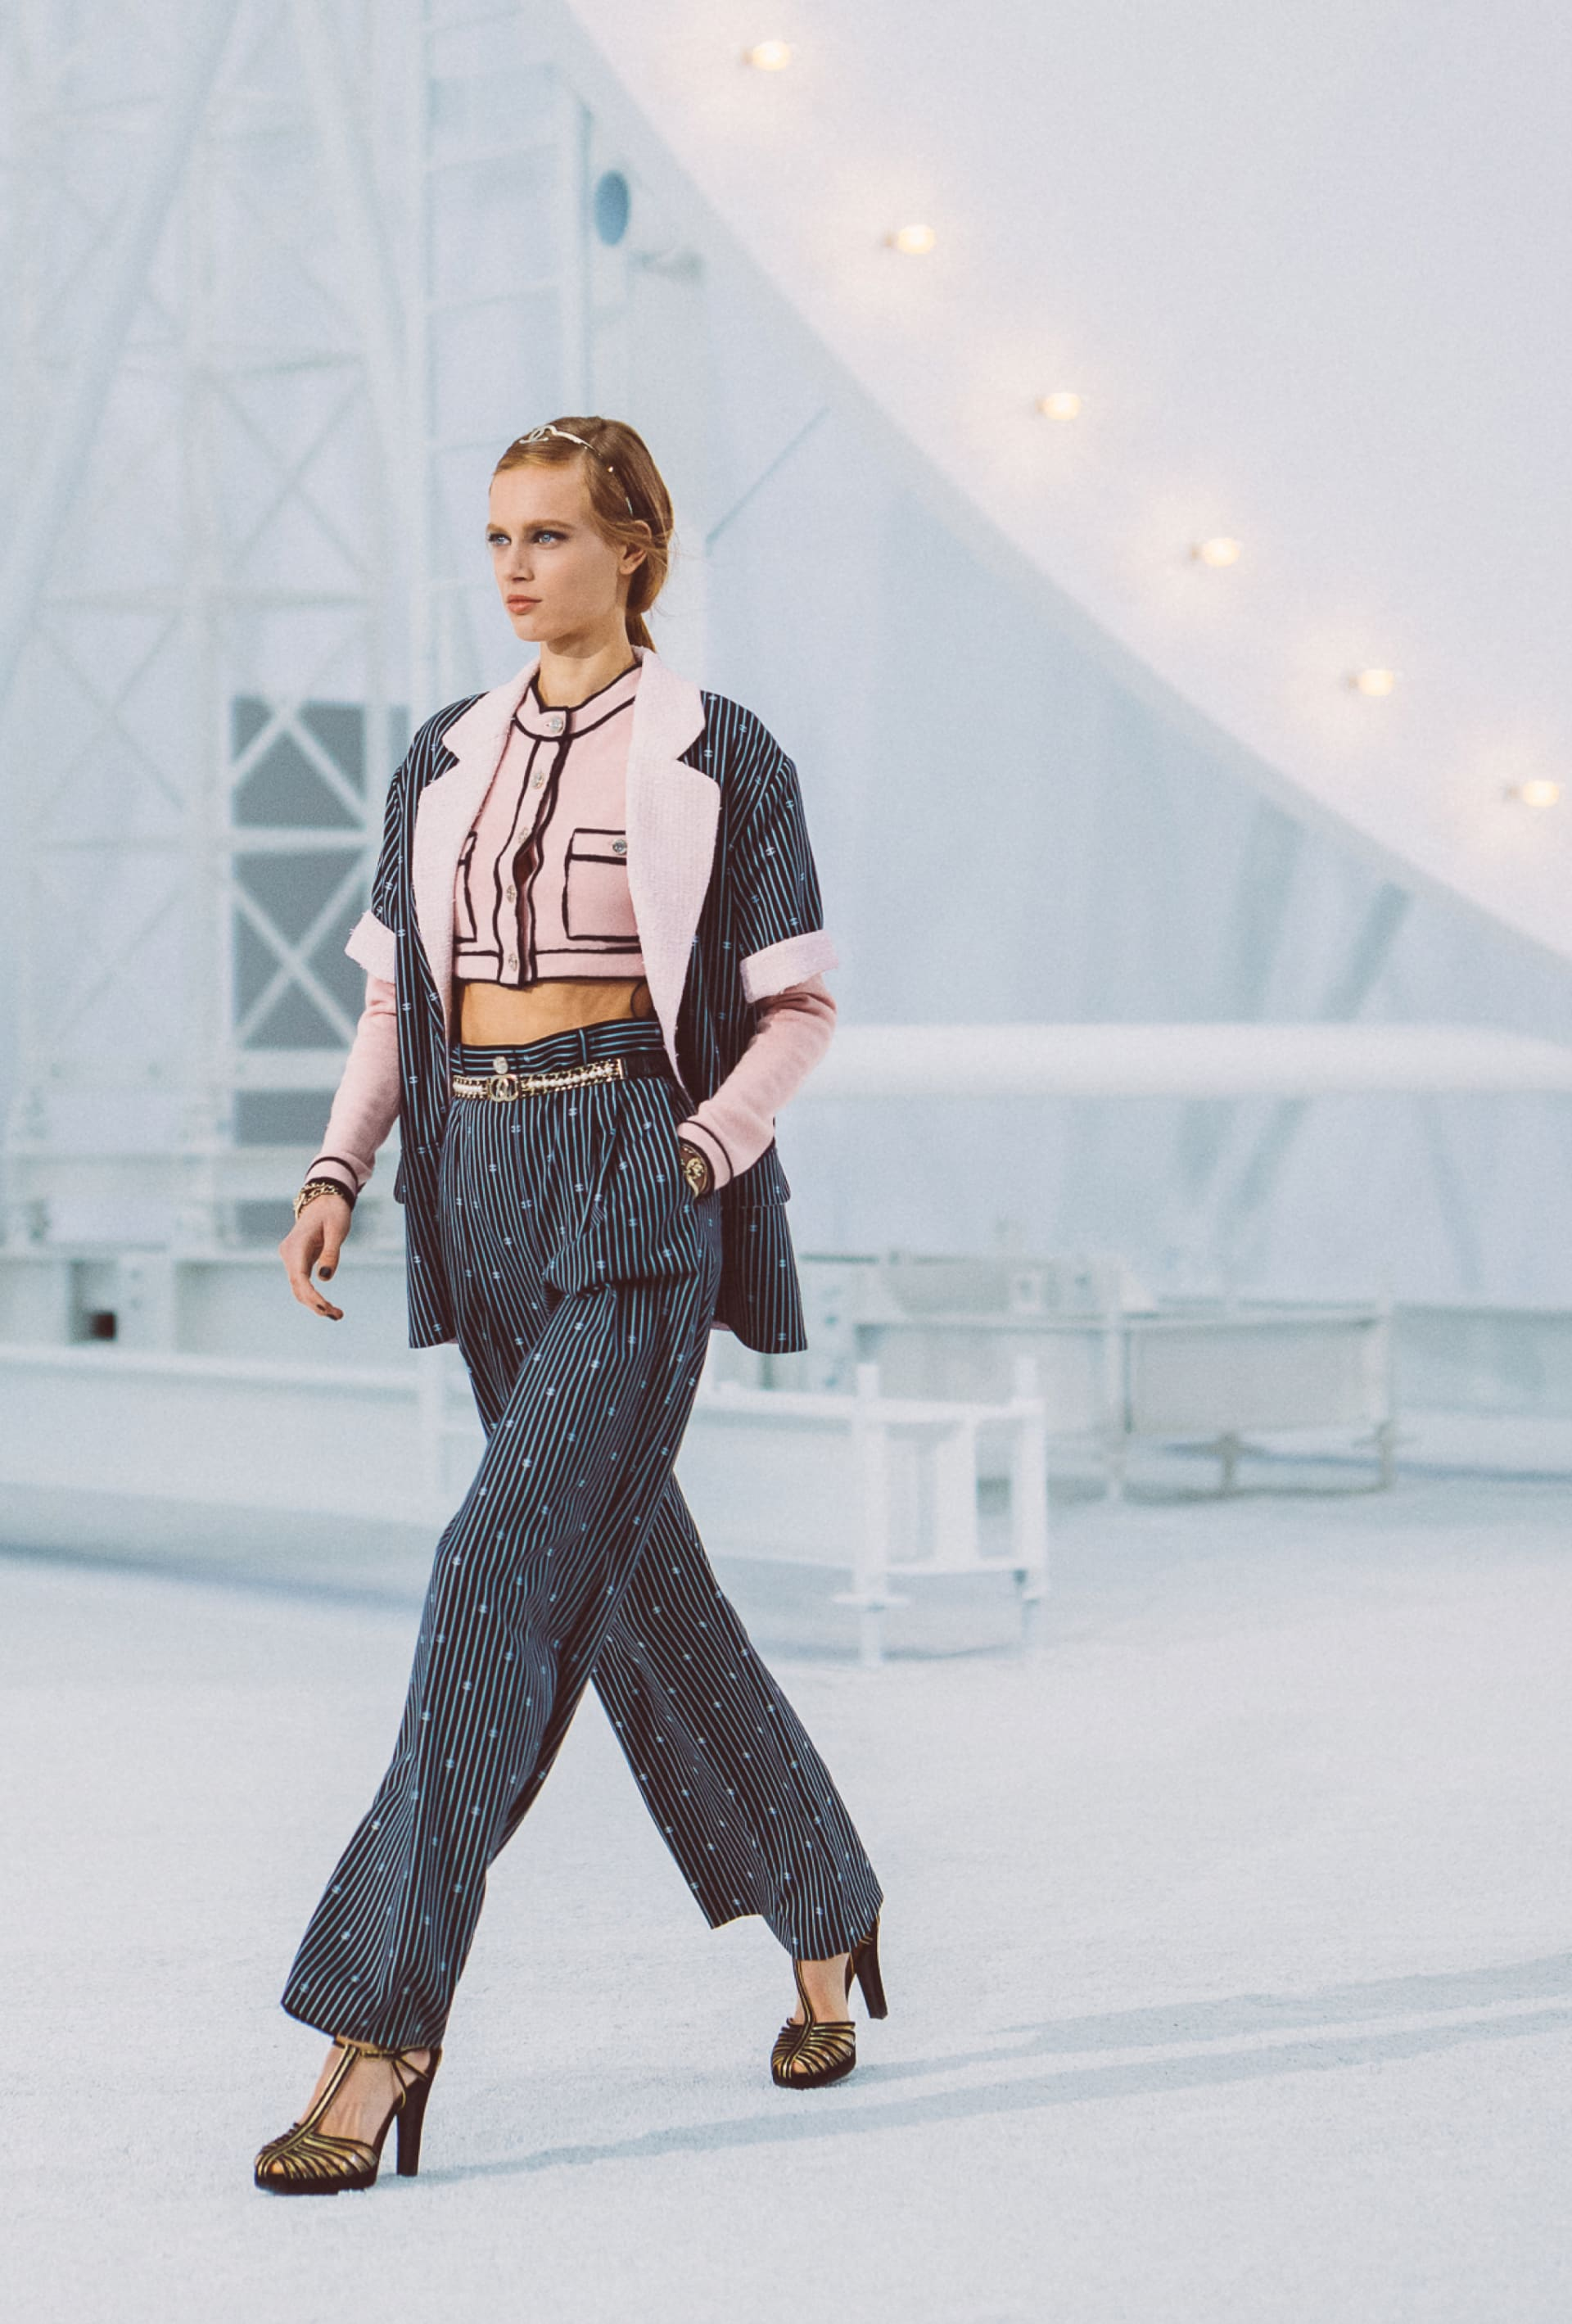 View 2 - Look 10 - Spring-Summer 2021 - see full sized version